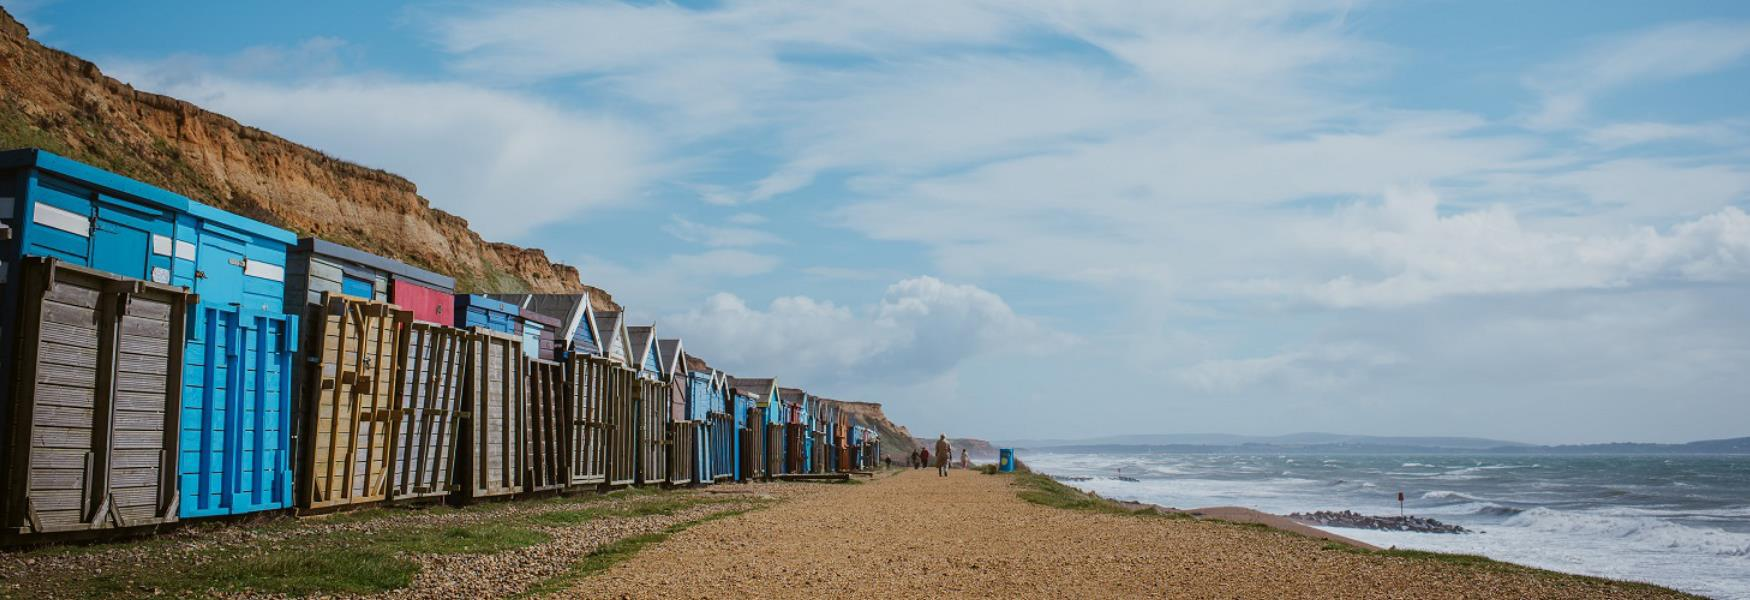 beach huts at barton on sea coast in the new forest